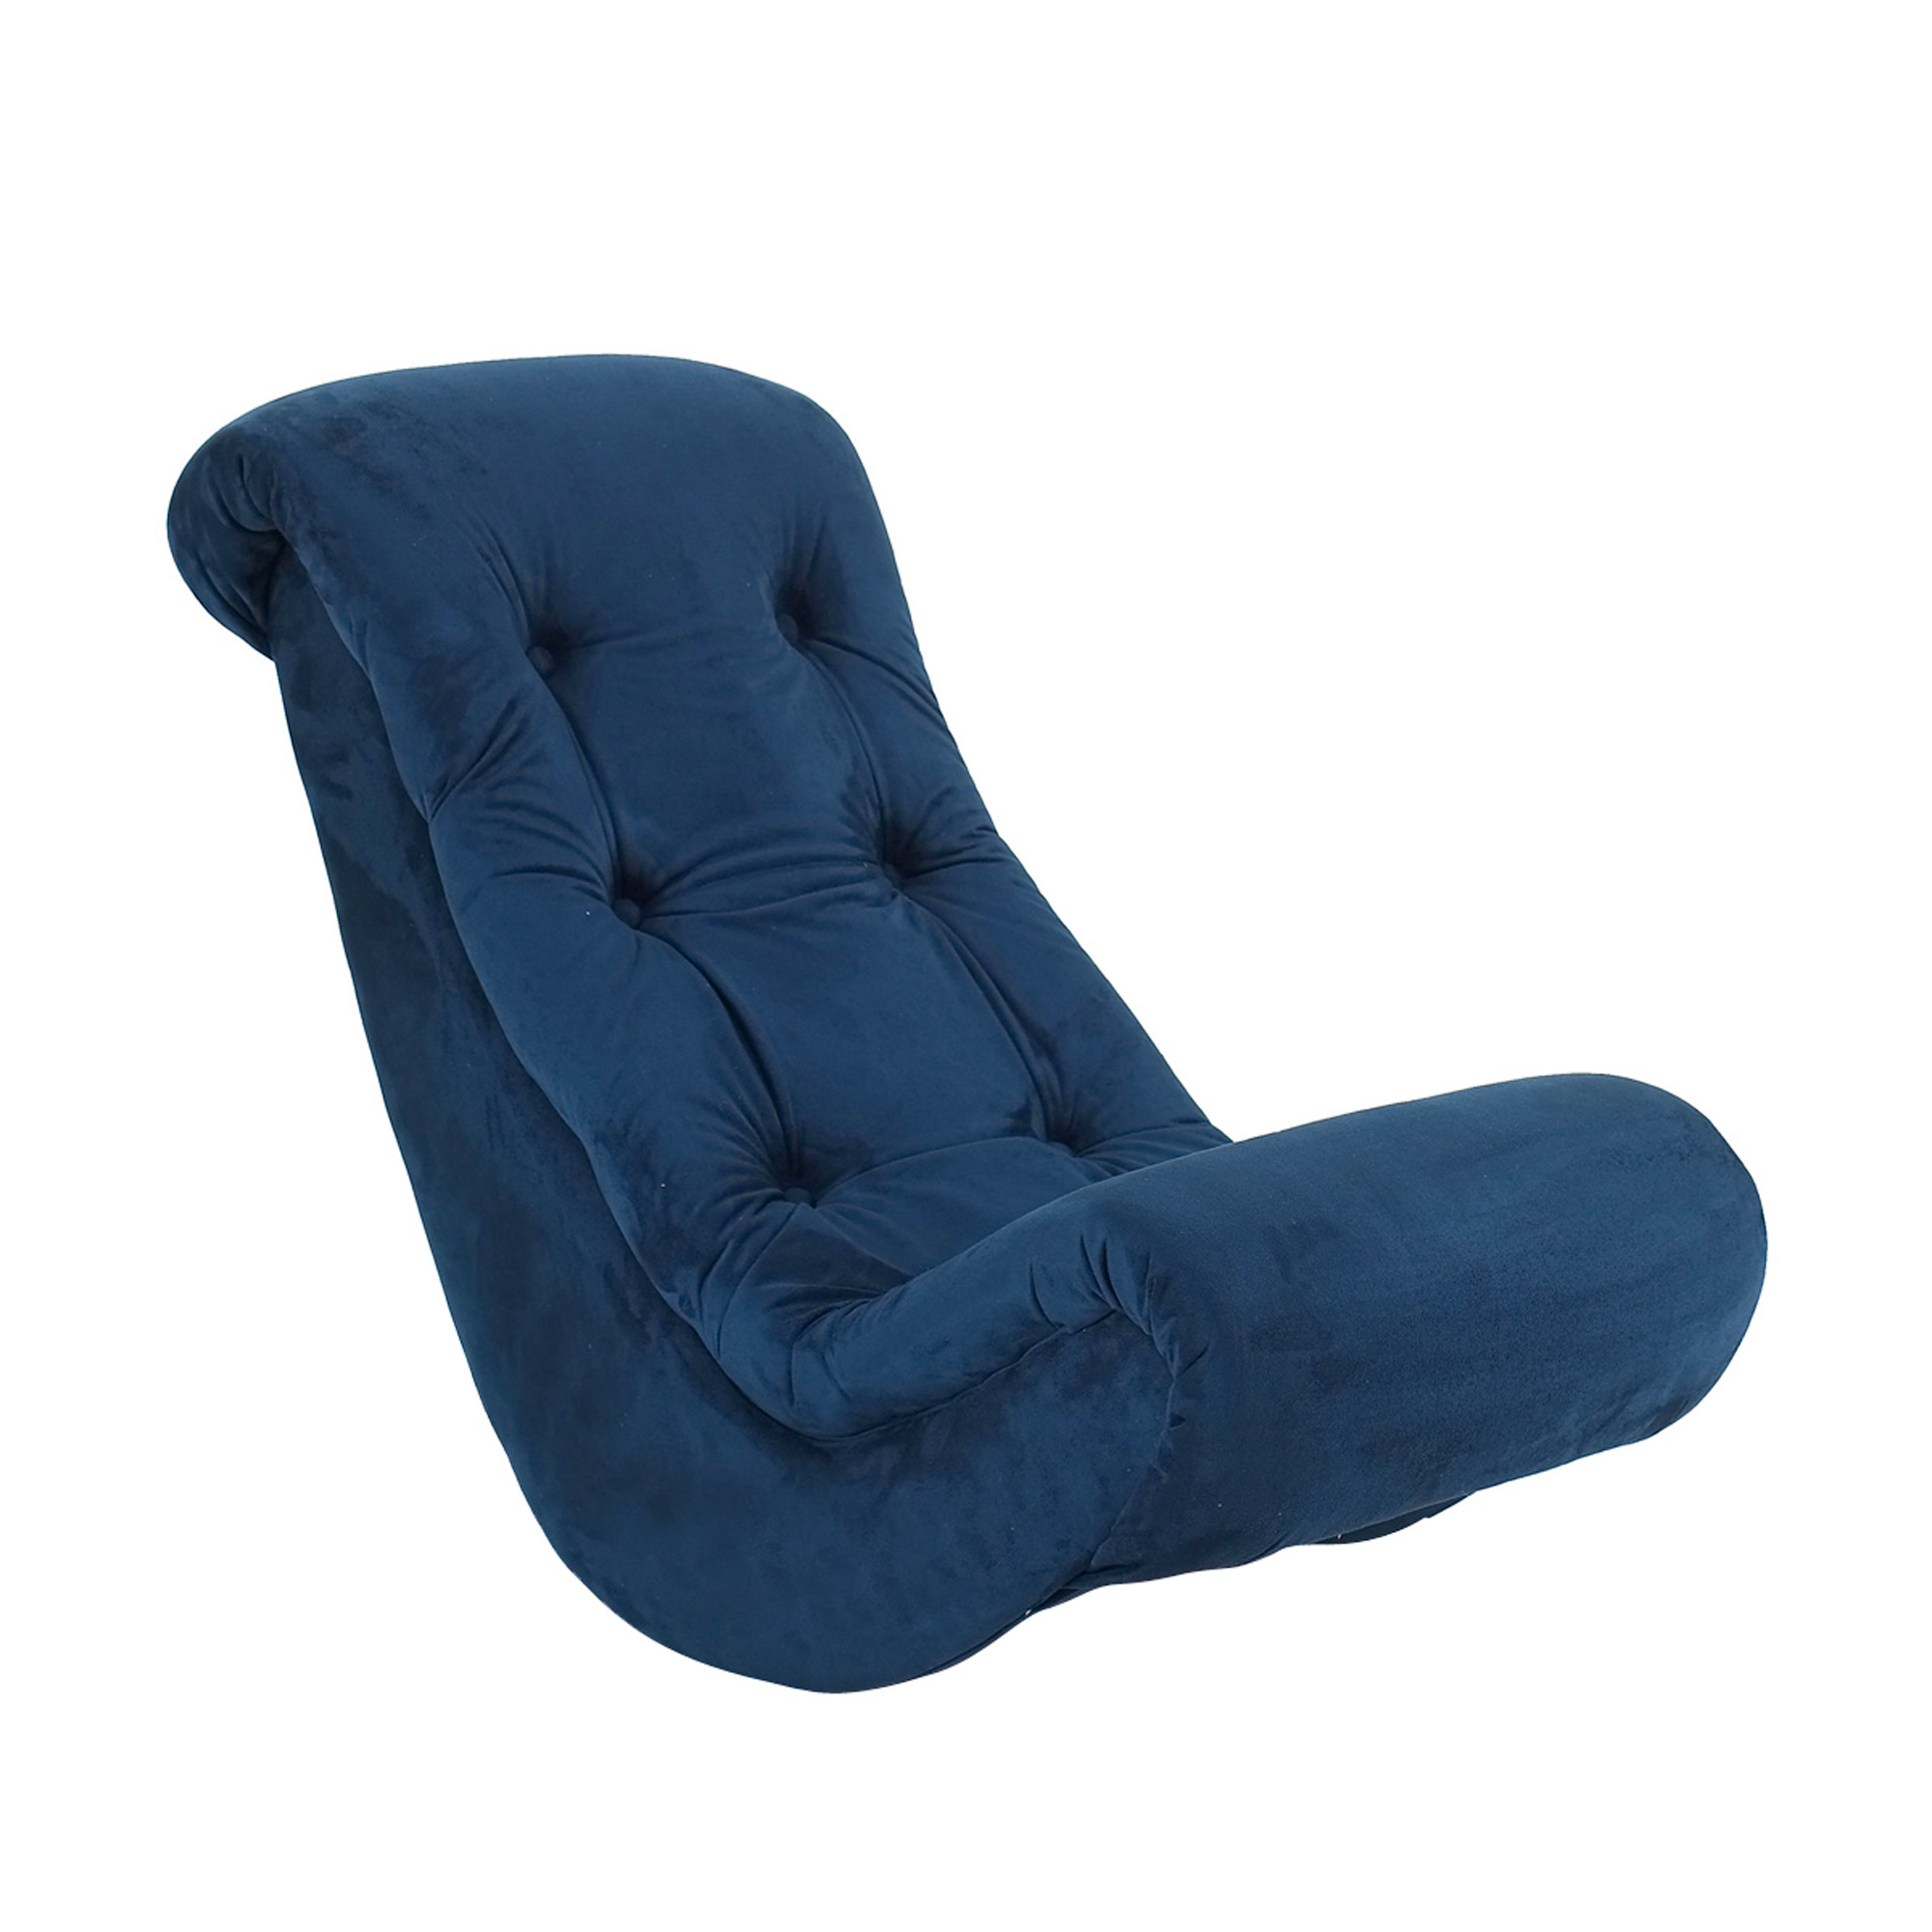 Banana Rocker Chair Komfy Kings Kids Classic Banana Rocker Navy Blue Micro